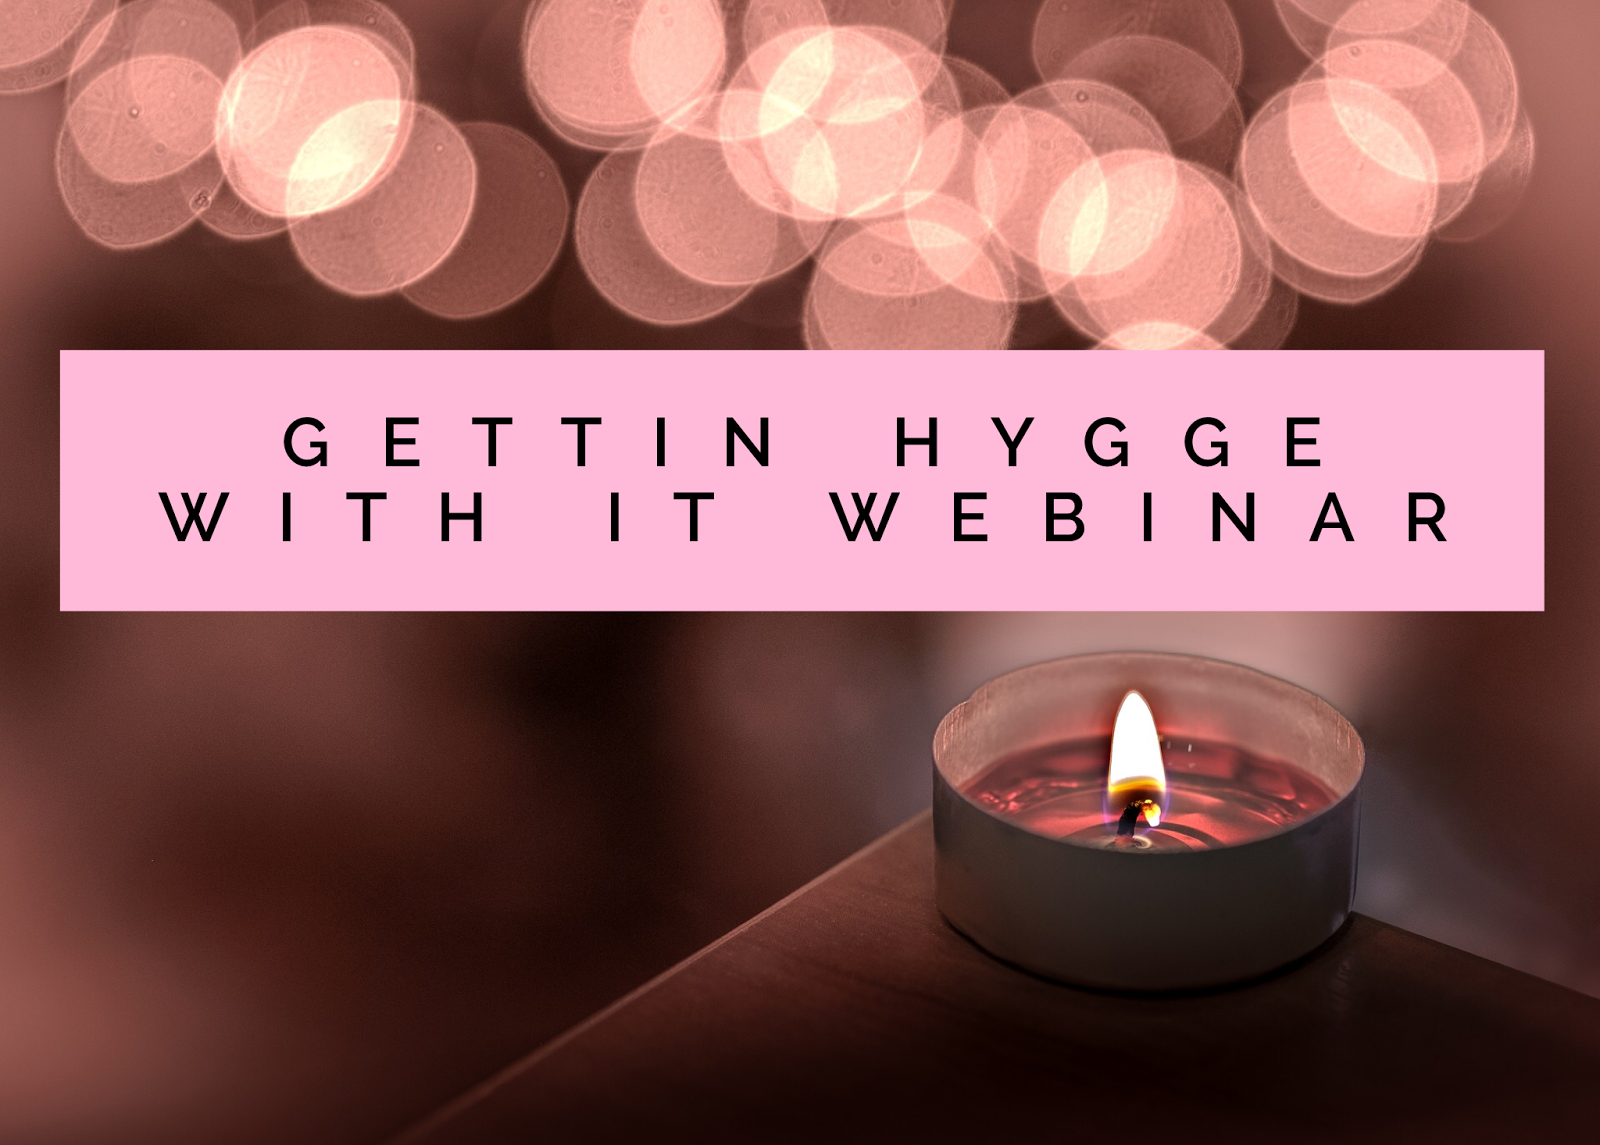 Sign Up For My Free Hygge Webinar: